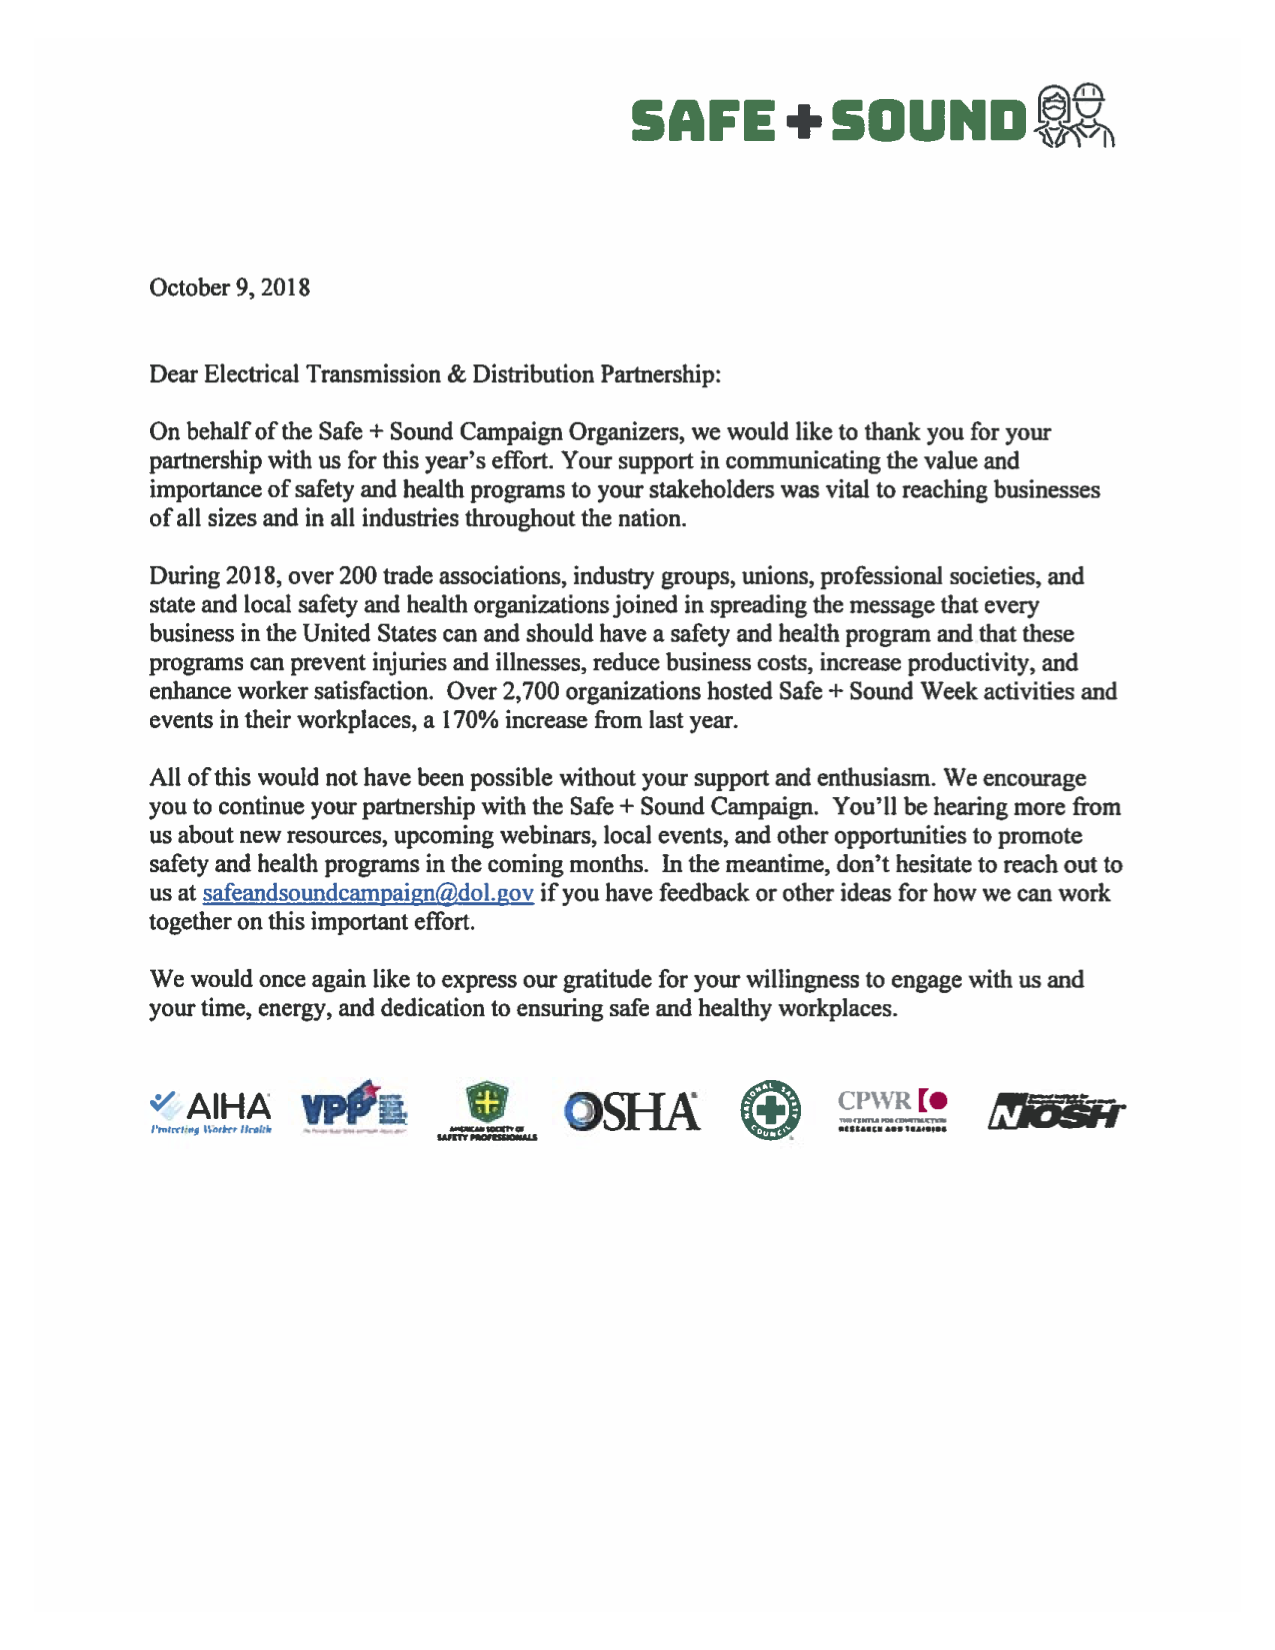 OSHA Safe Sound Week Recogntion 11 2018